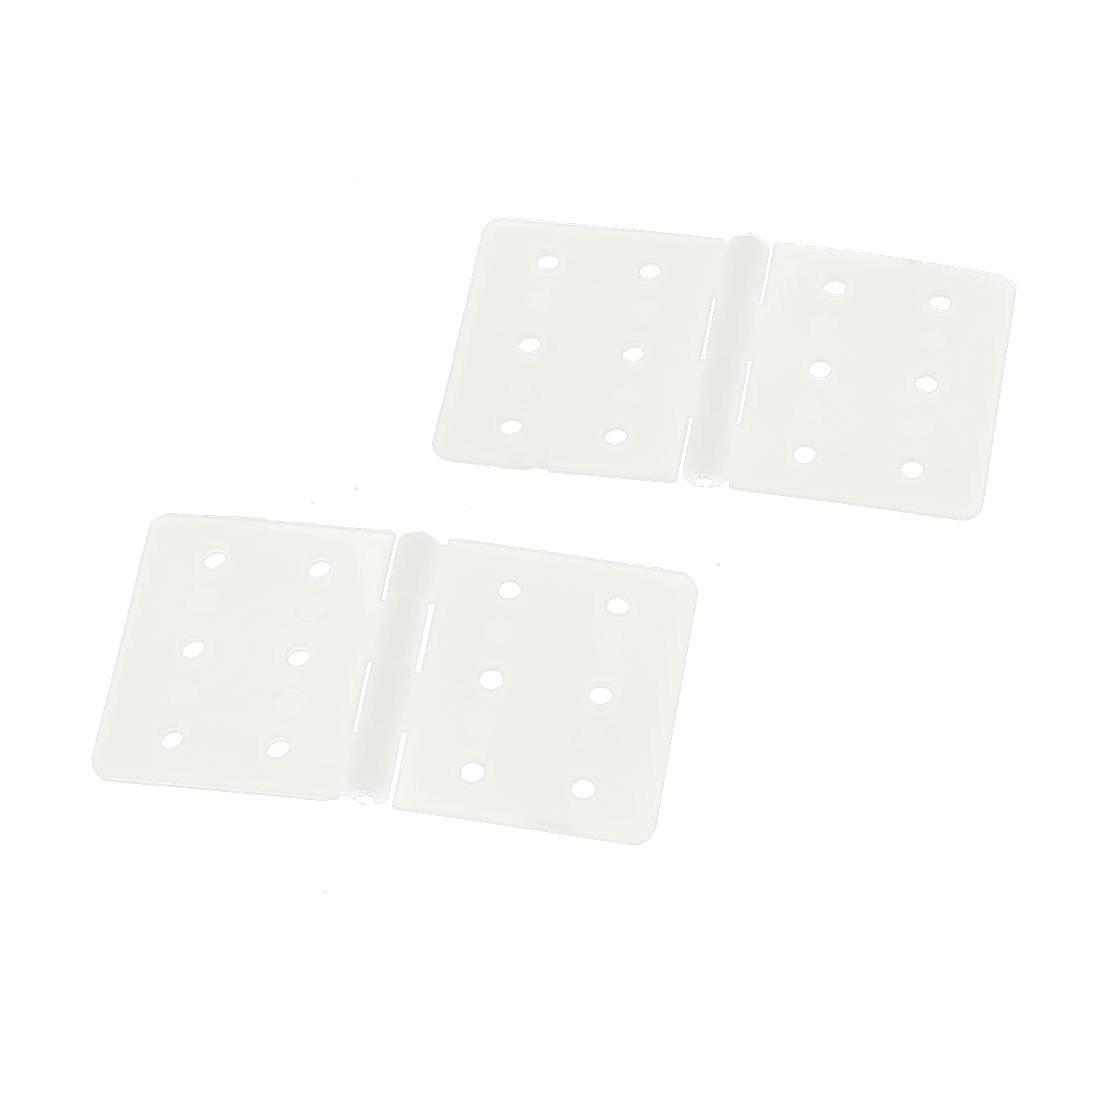 2 Pcs 0.3mm Mount Dia 9 Hole Plastic Right Angle Bracket Support 2cm x 2cm